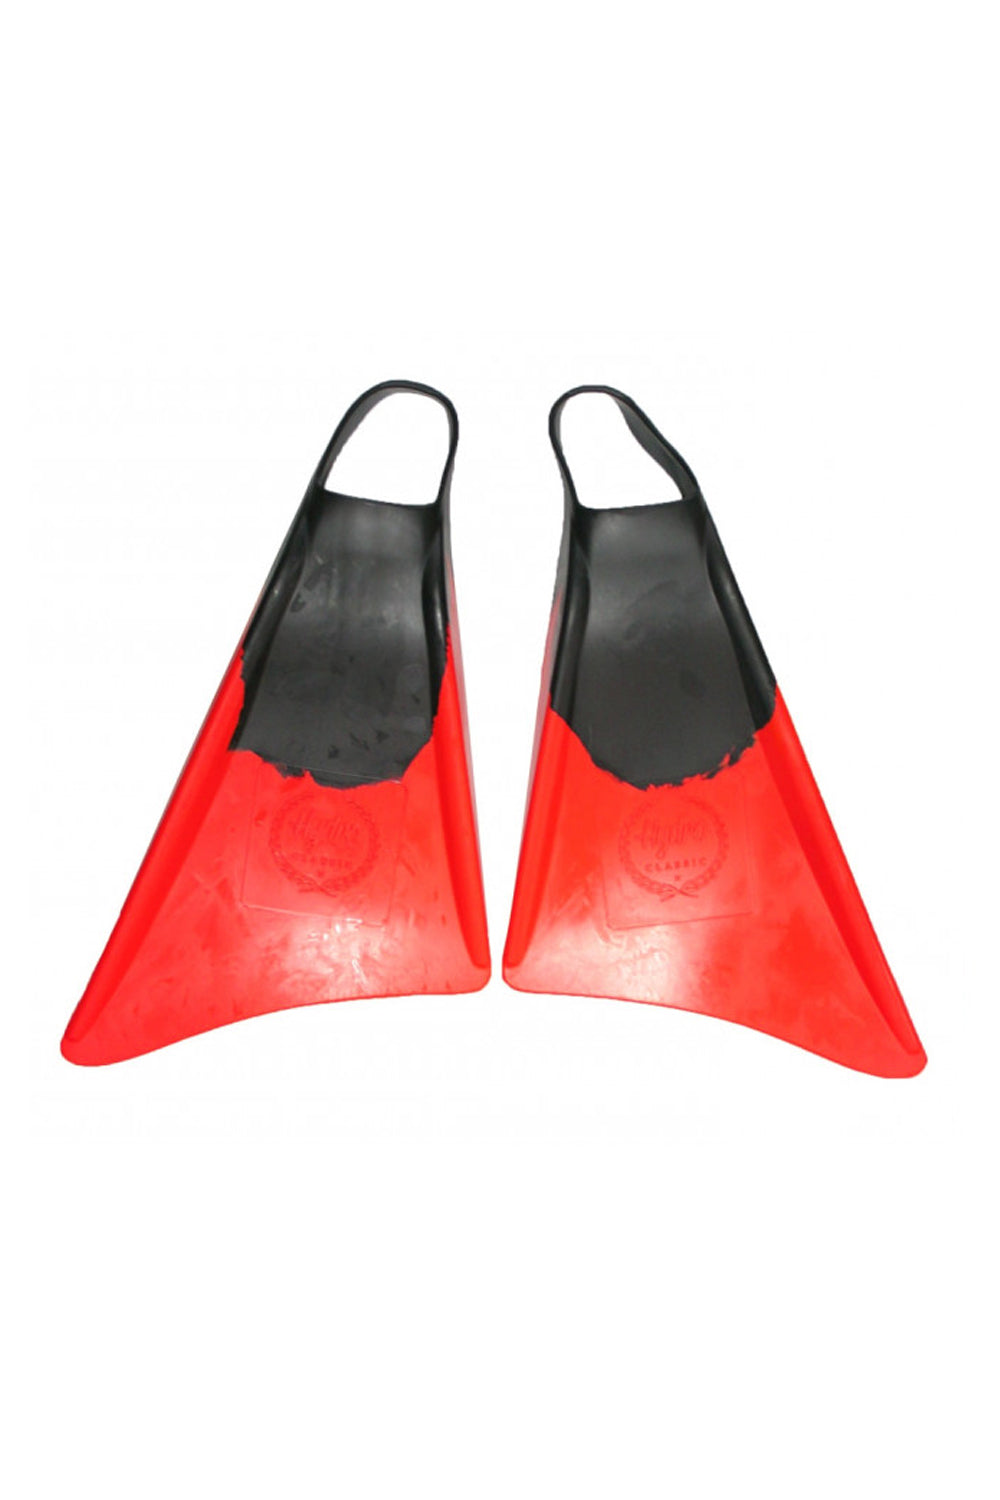 Hydro Fin Classic Flippers